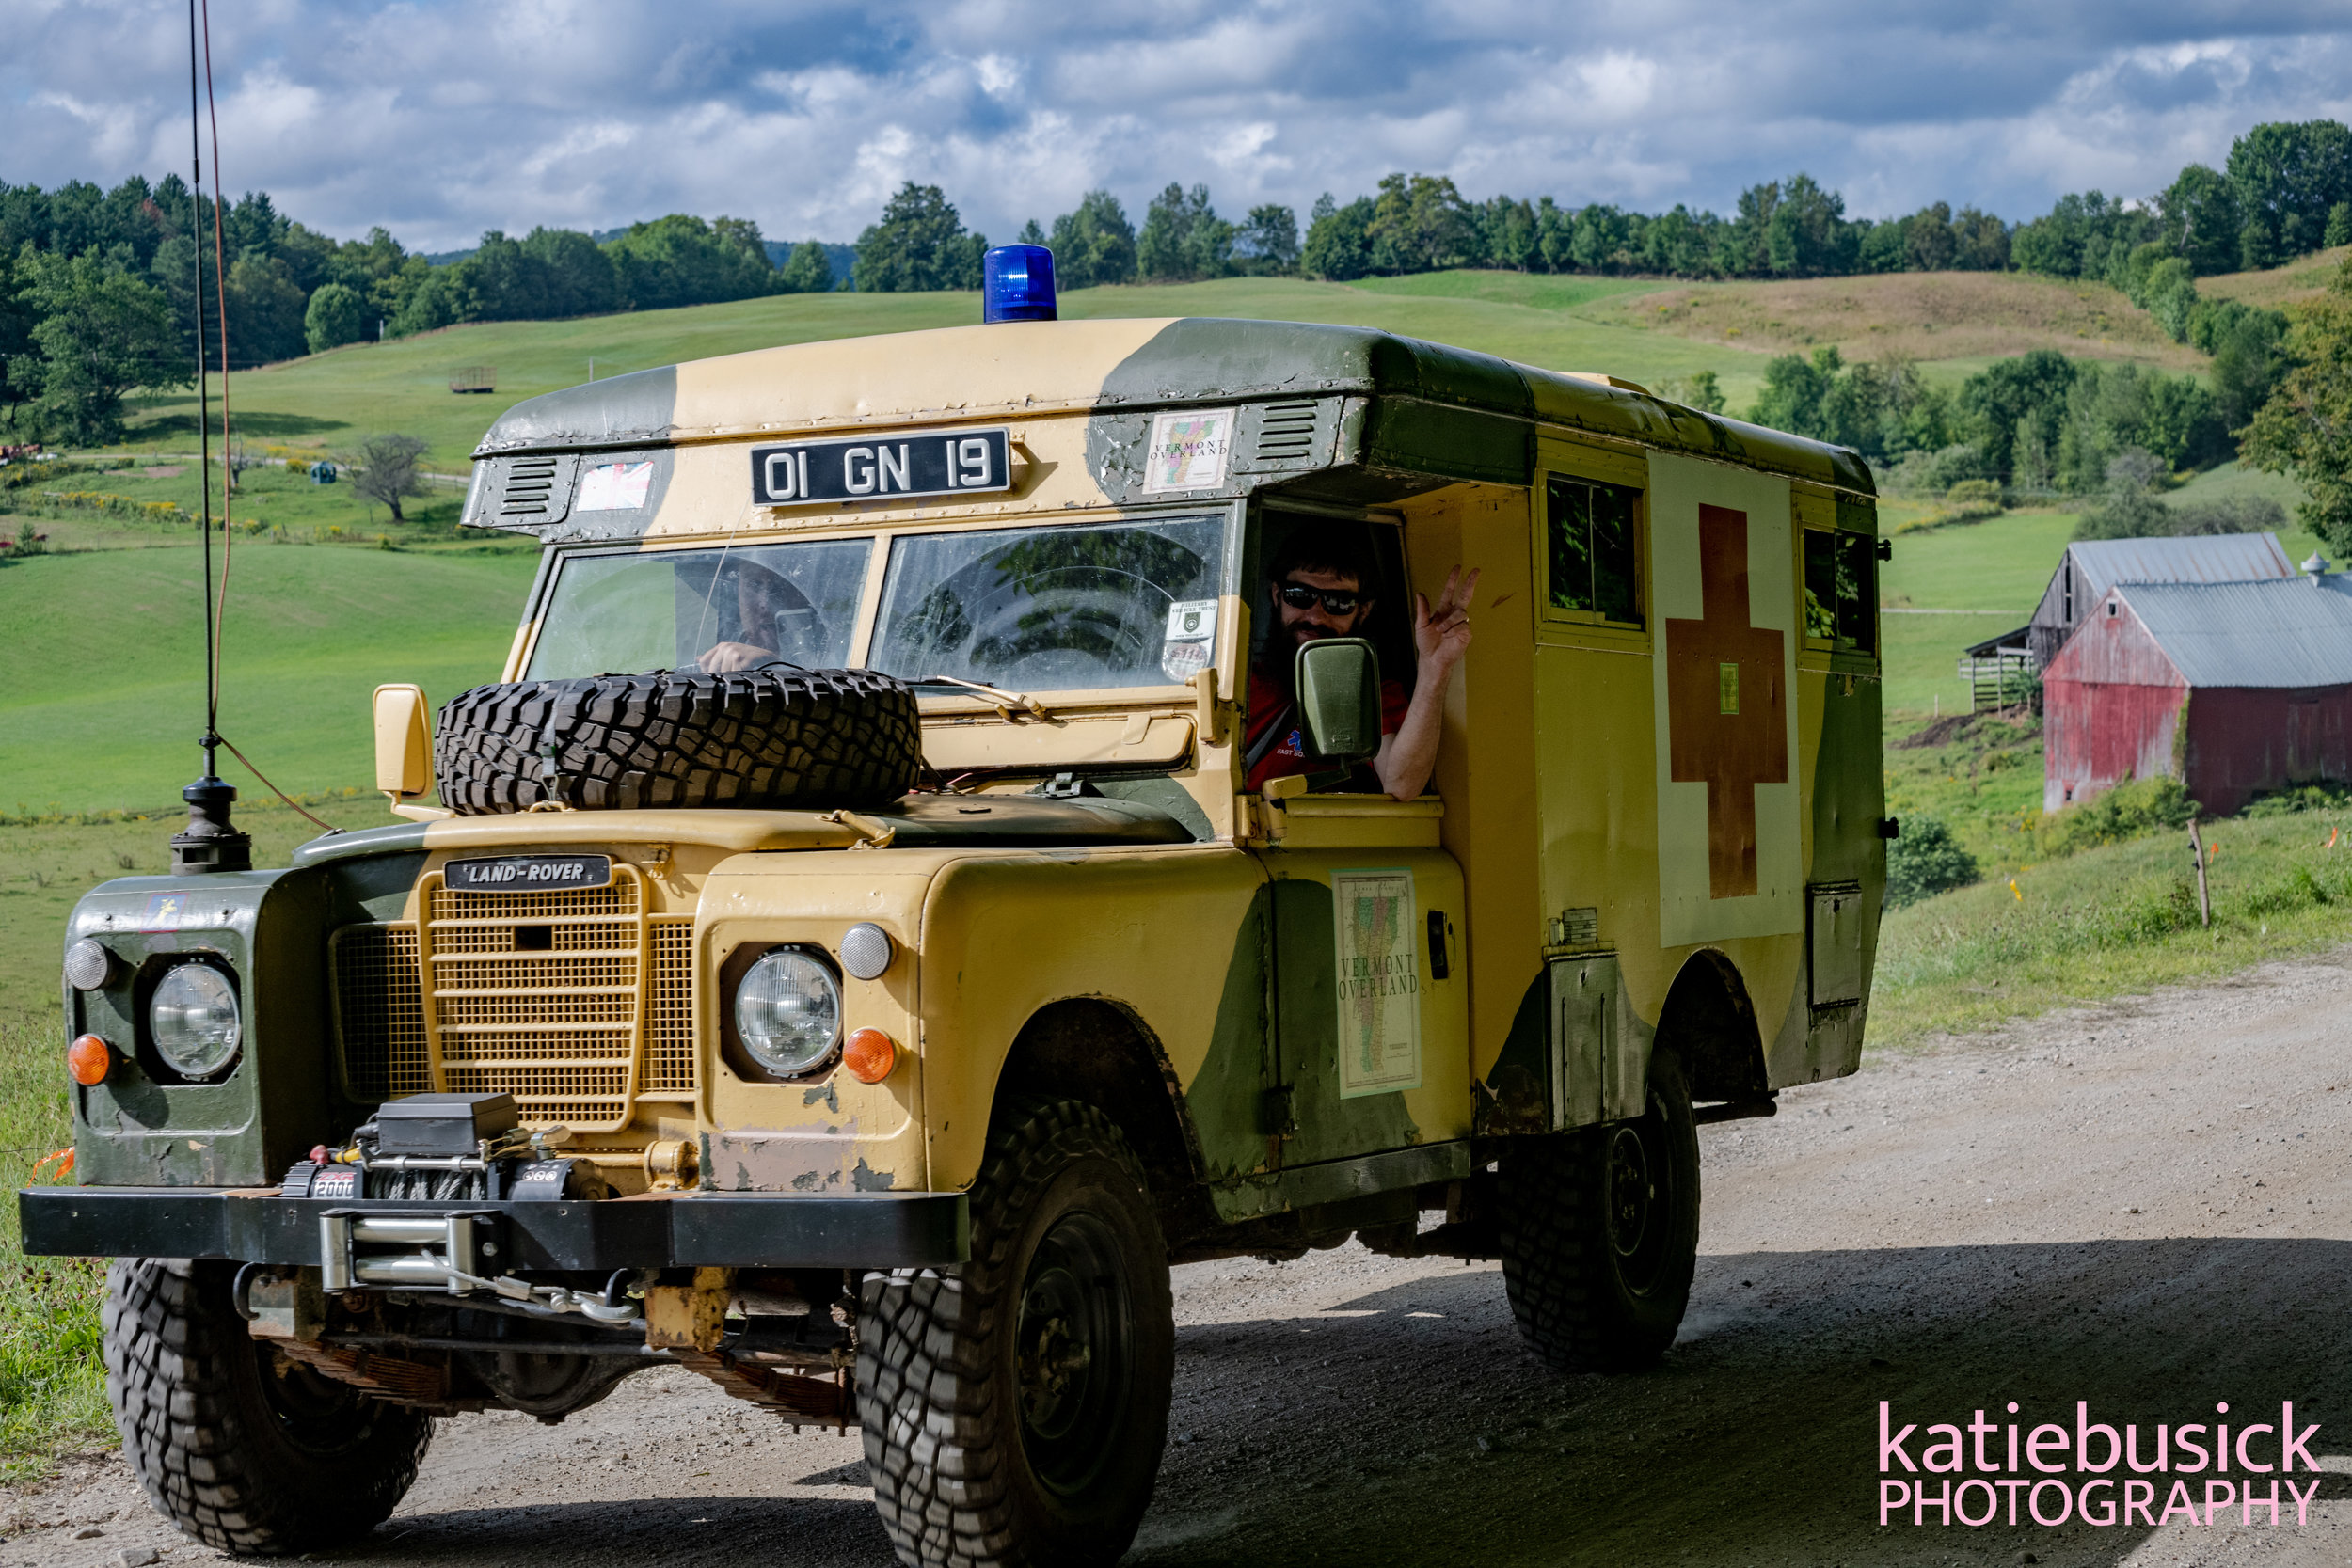 The Overland Support Vehicle